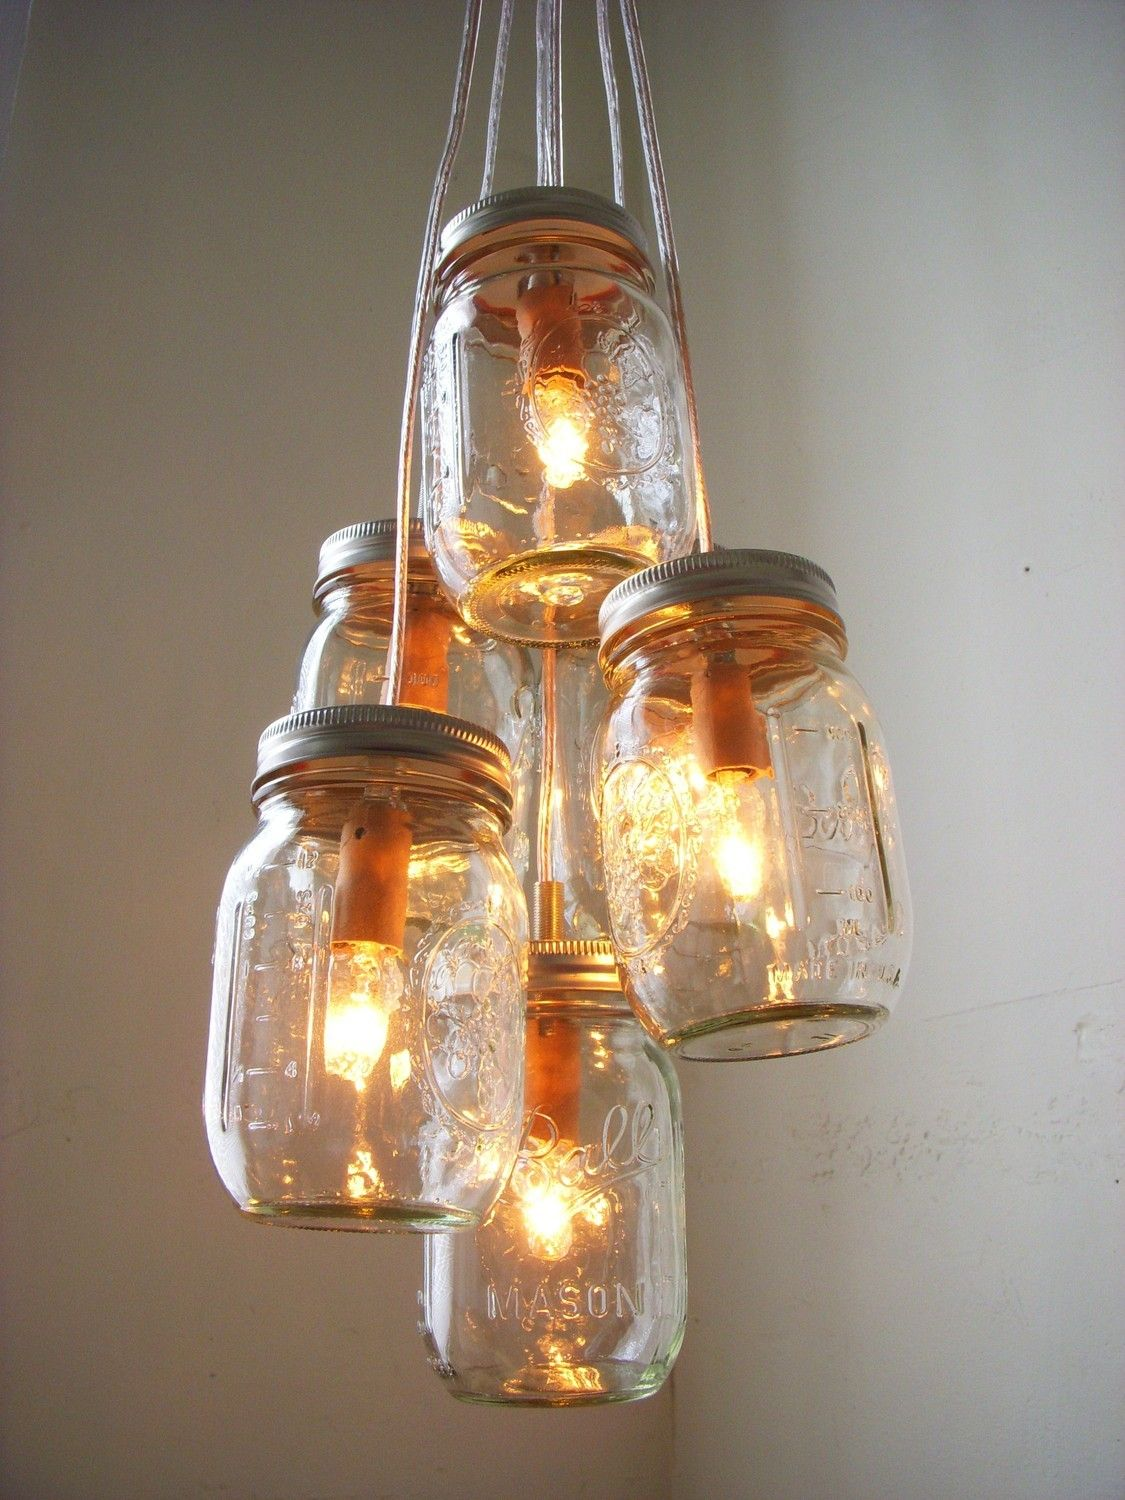 1000 images about lighting on pinterest pendant lights pendants and glass shades austin mason jar pendant lamp diy